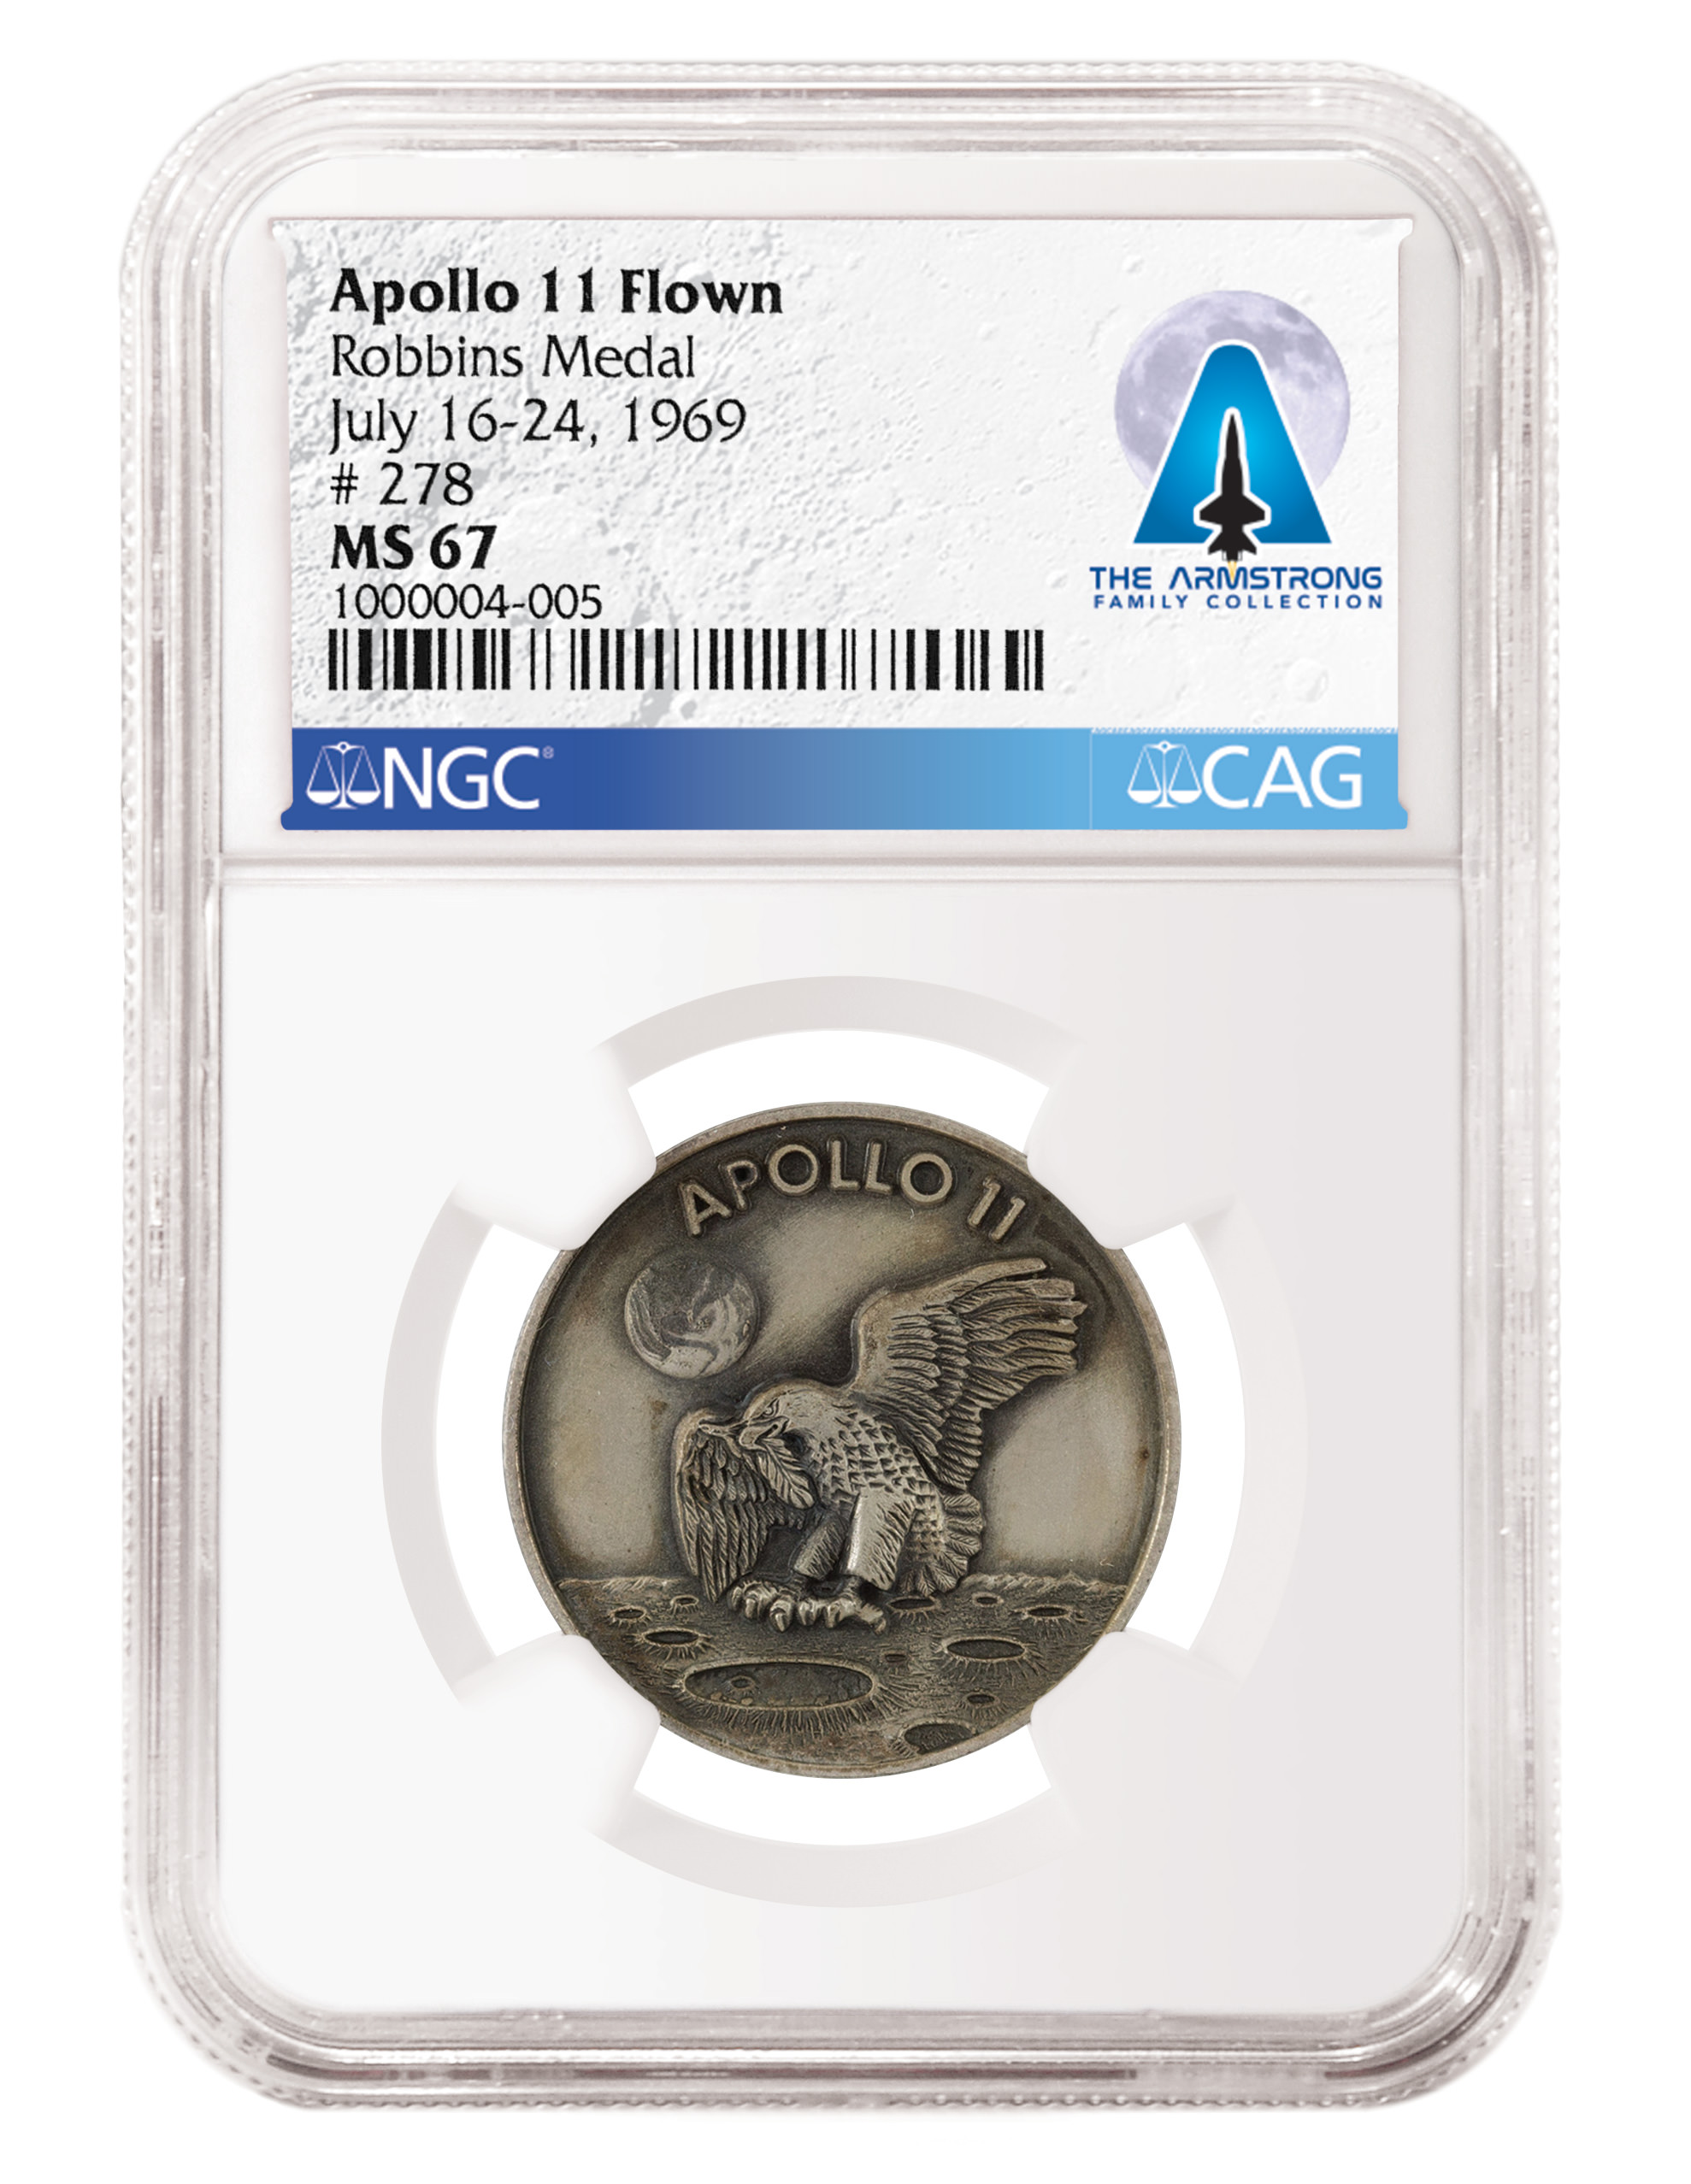 thumbnail image for Neil Armstrong, Apollo 11 Medals, Flags, and Wright Flyer Pieces Excel at the Second Armstrong Family Collection Sale